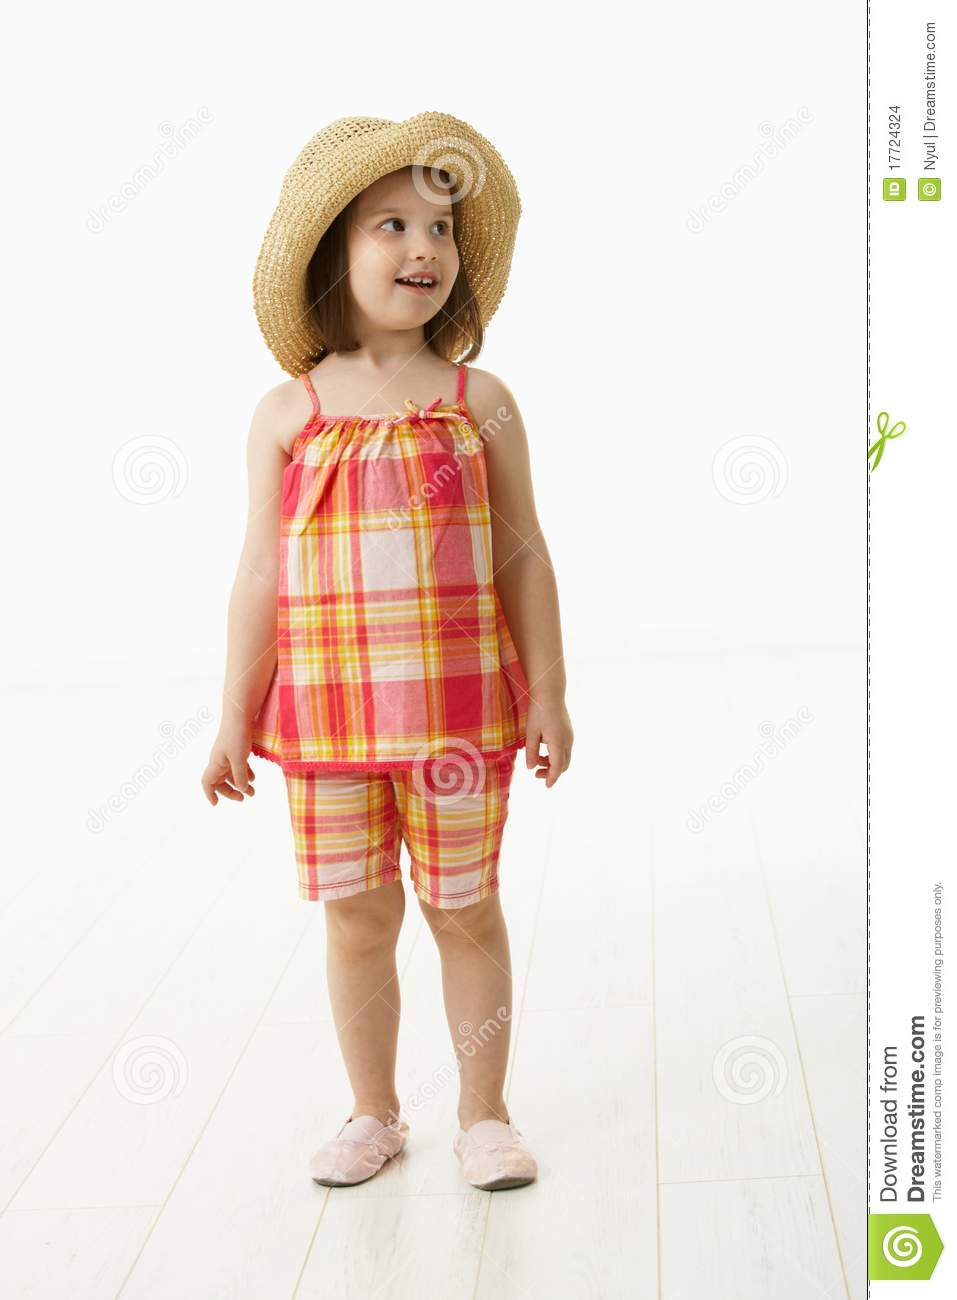 Little Girl In Summer Dress Stock Images - Image: 17724324